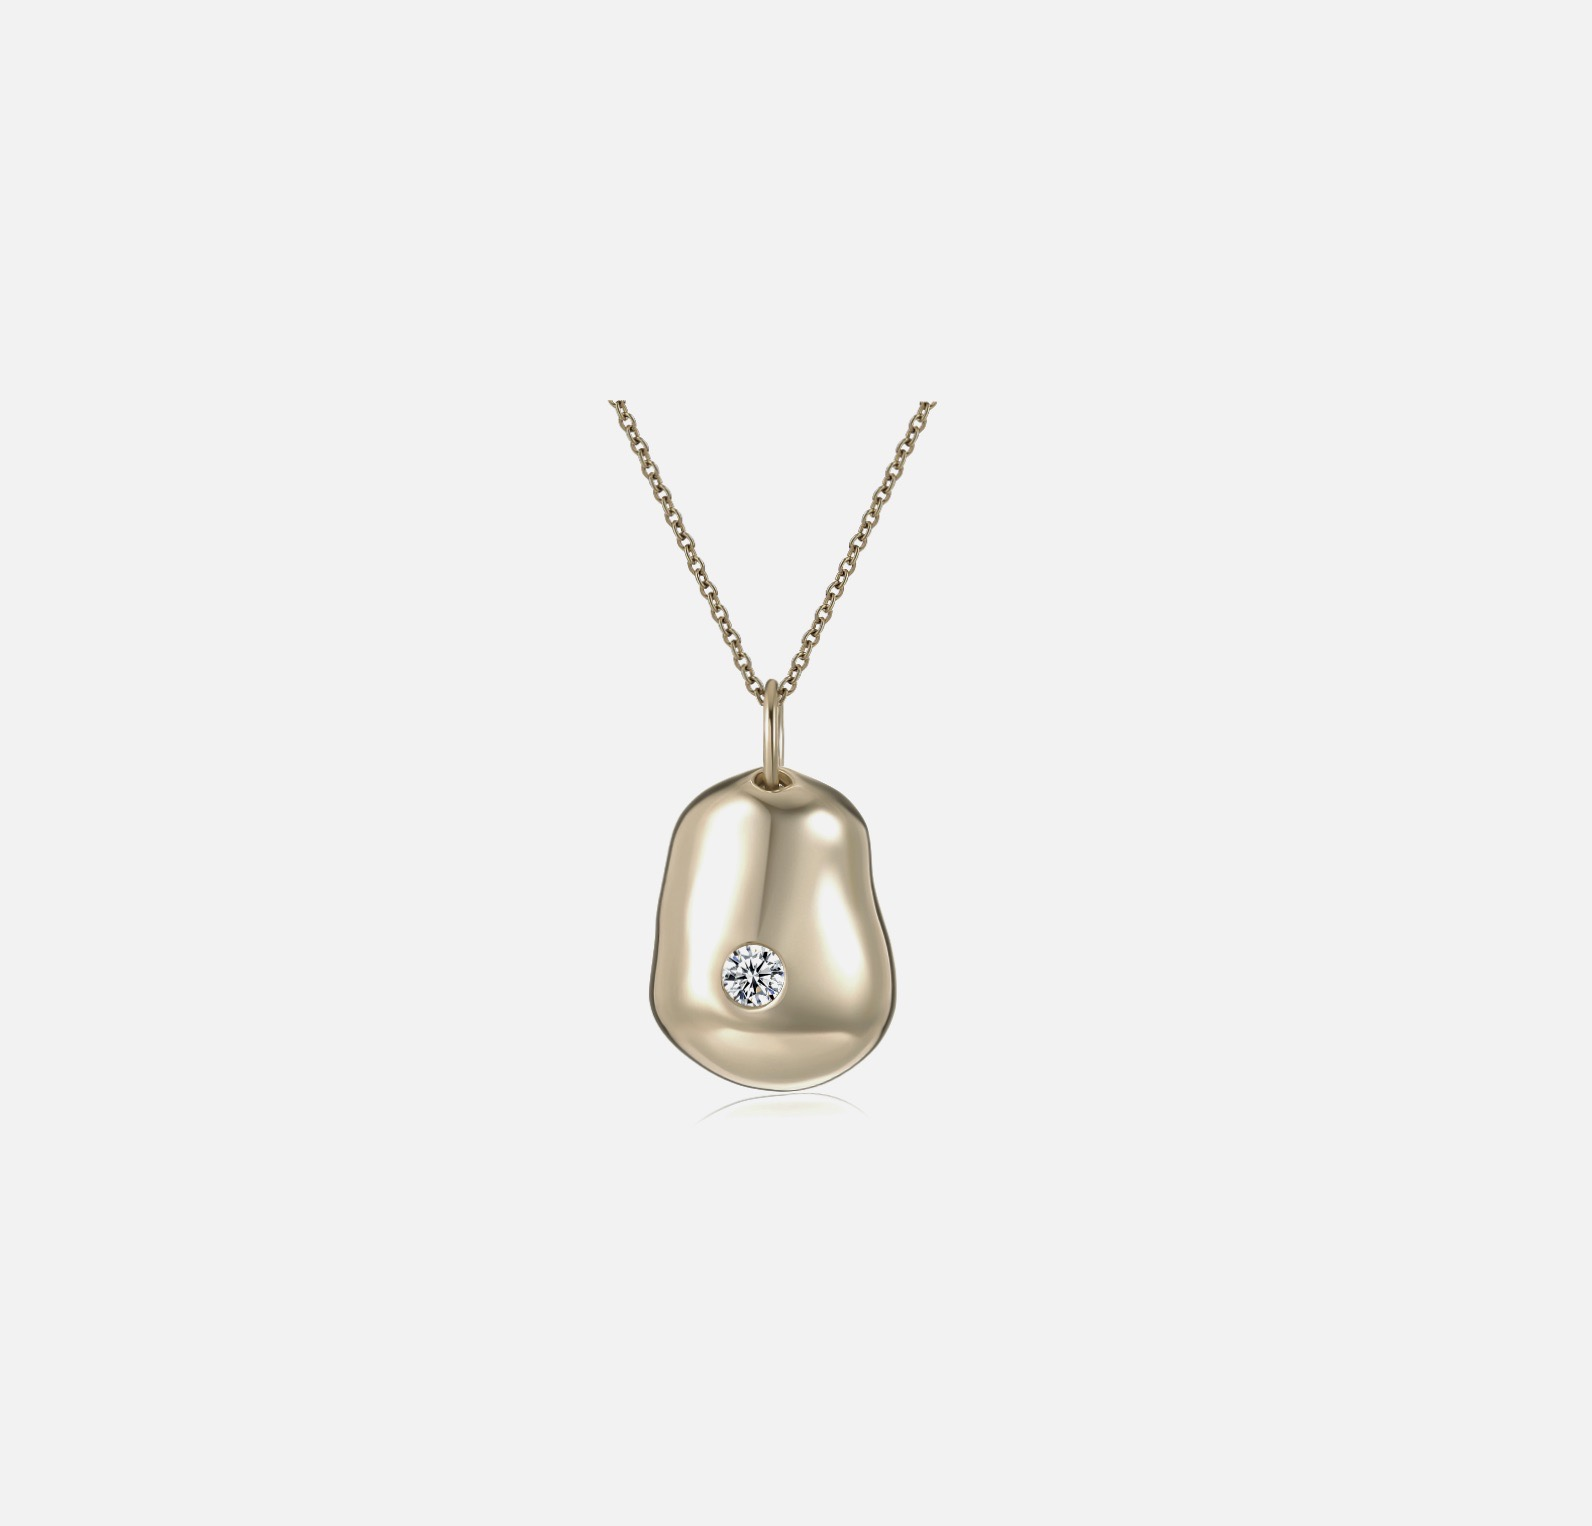 Hudson Pendant Necklace - Gold by Emili on curated-crowd.com